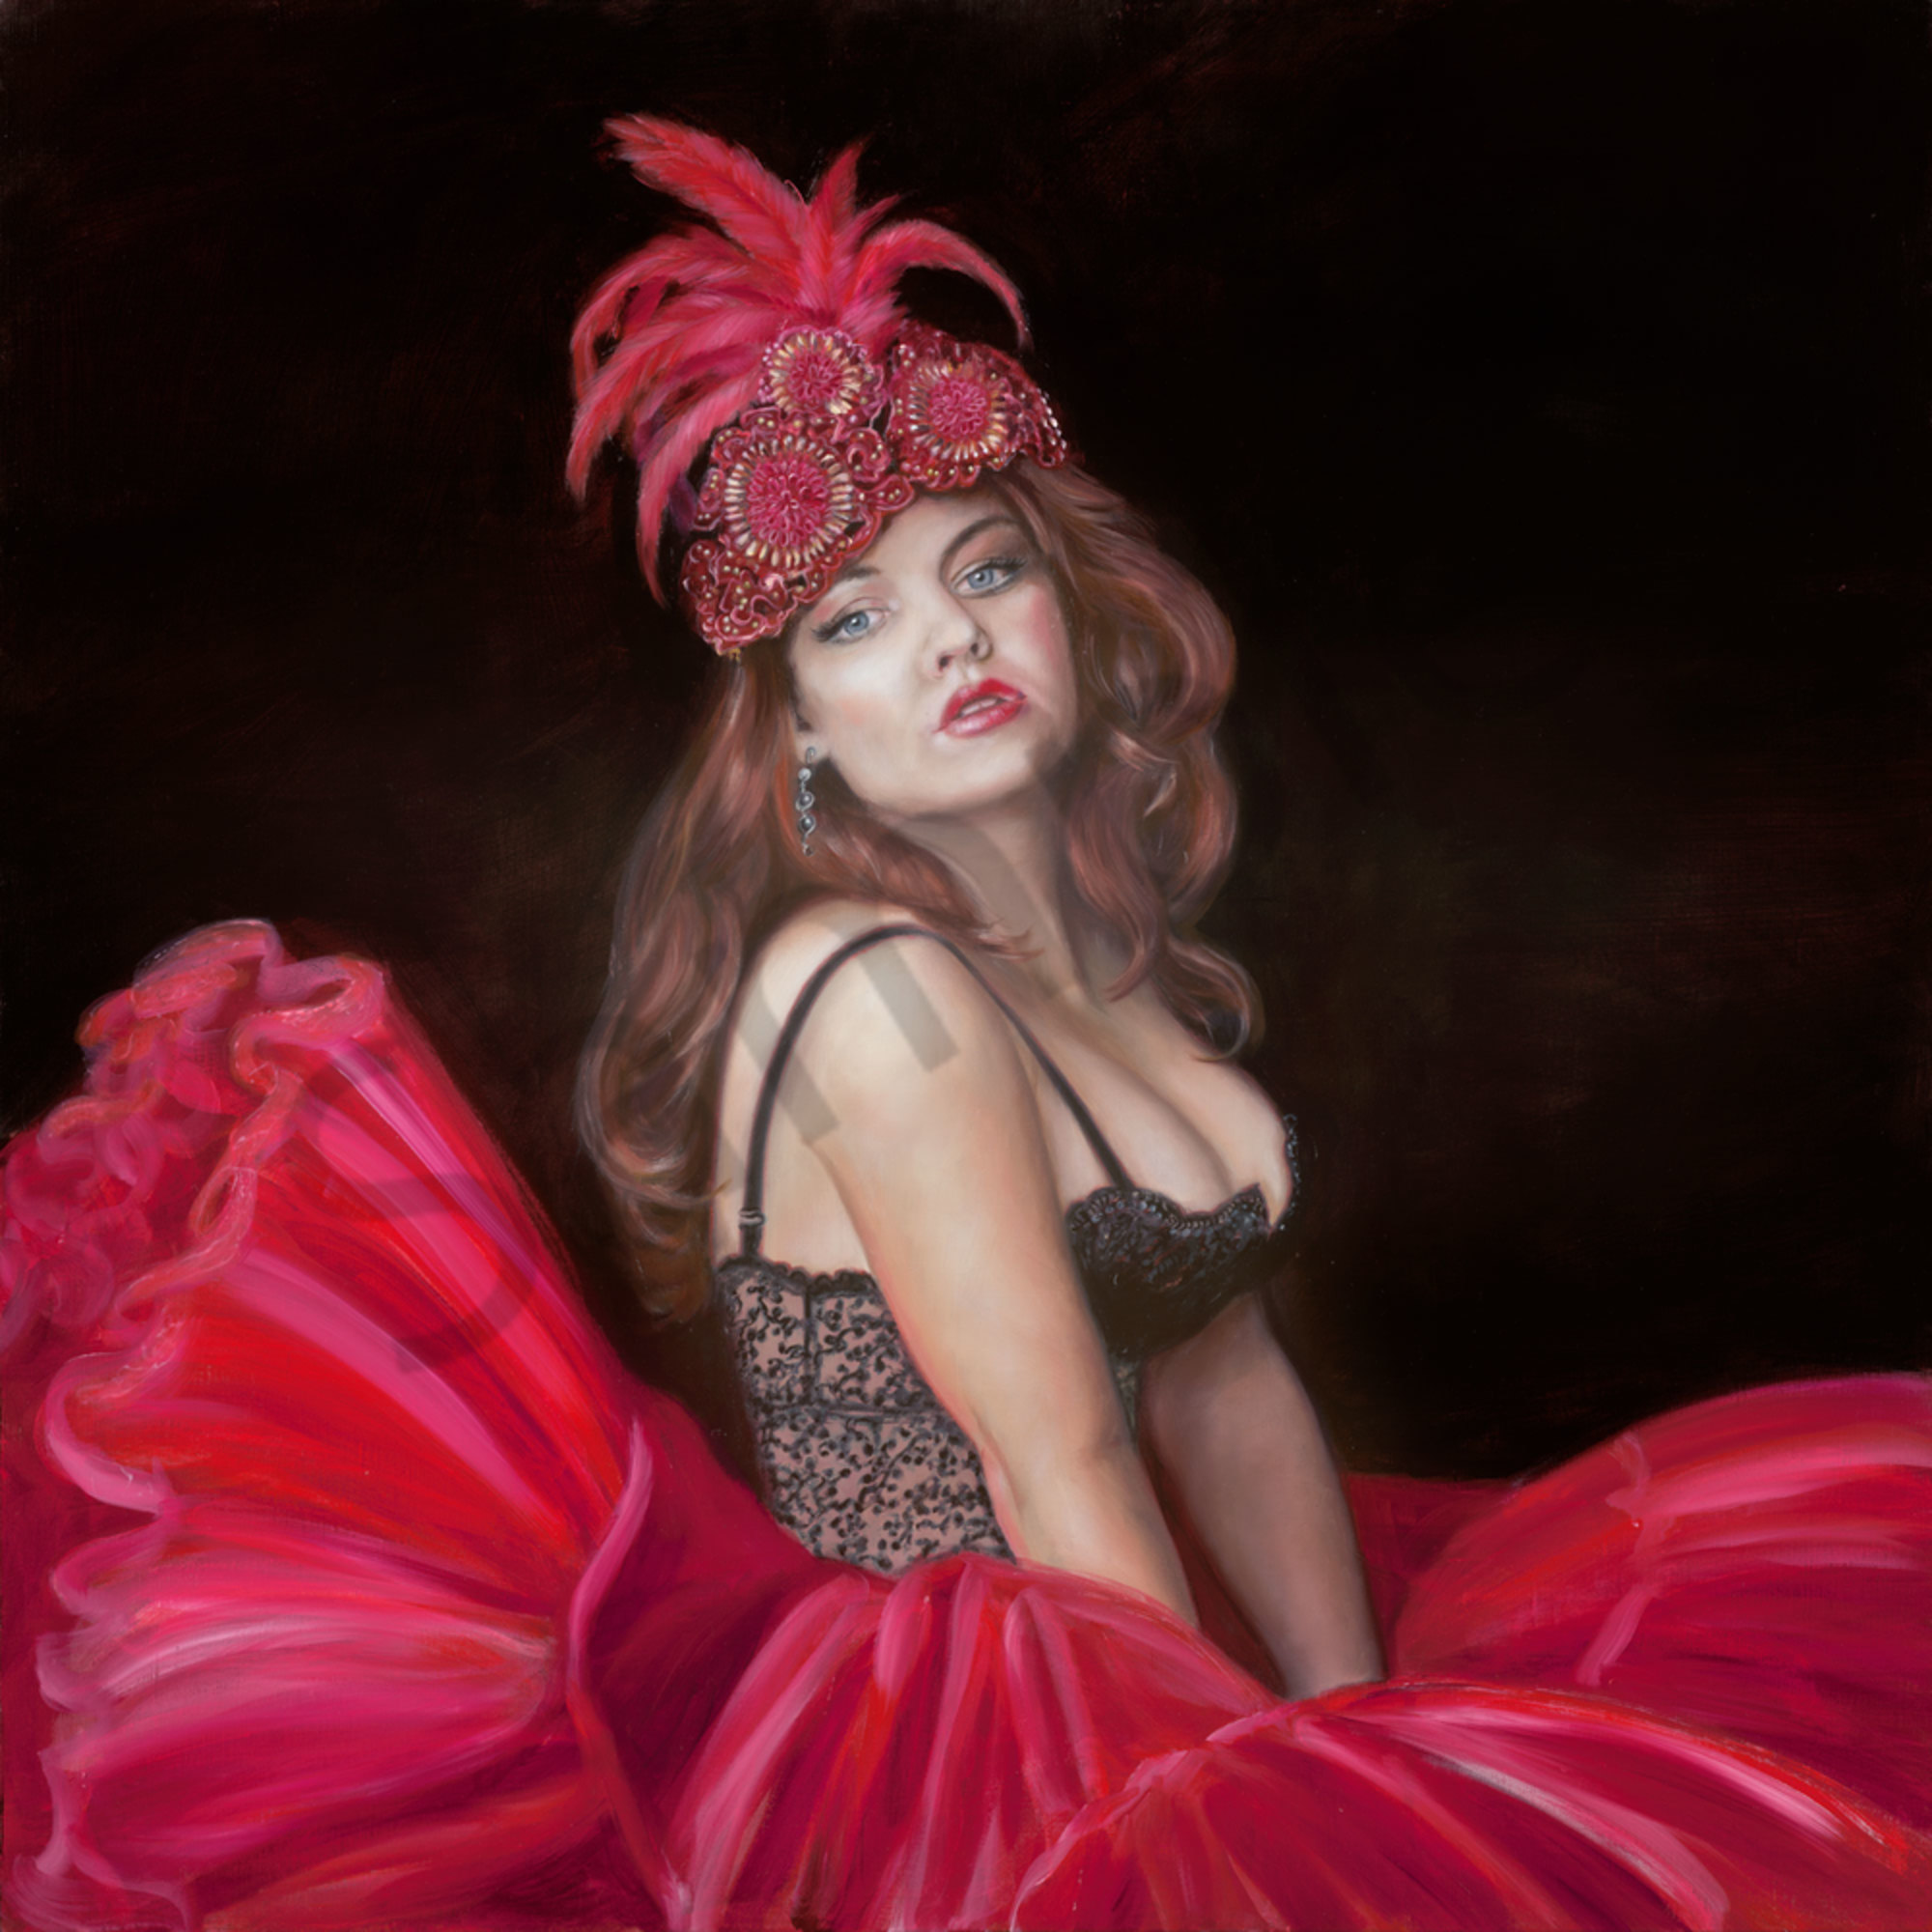 Clew 002 moulin rouge 90x90cm ro8zi3